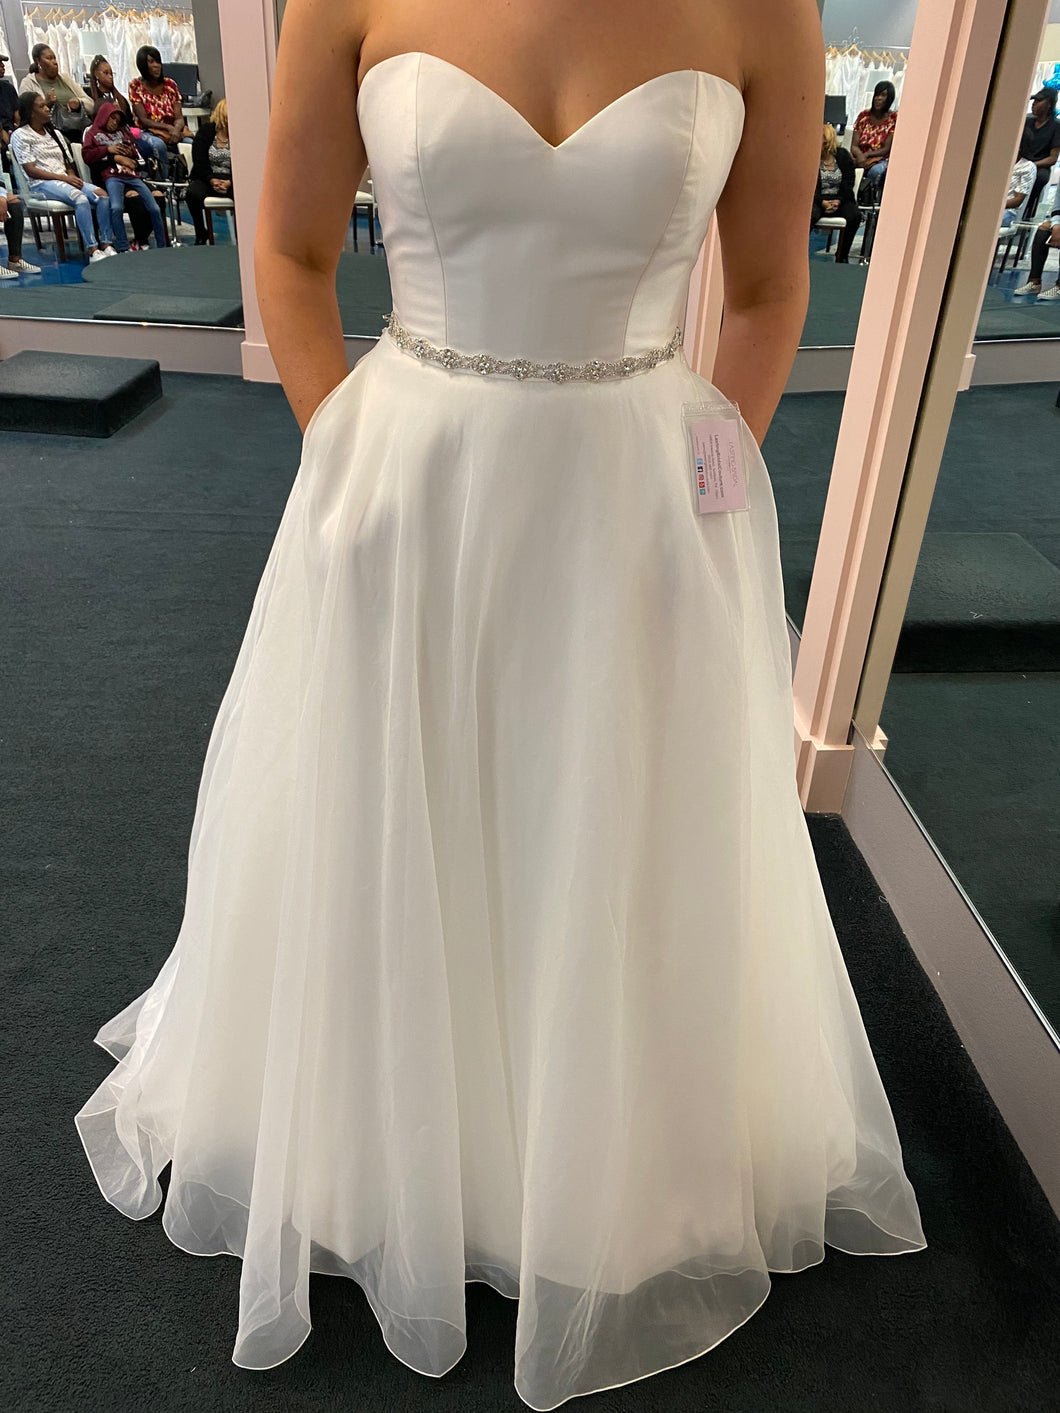 Sweetheart '11005' wedding dress size-12 NEW